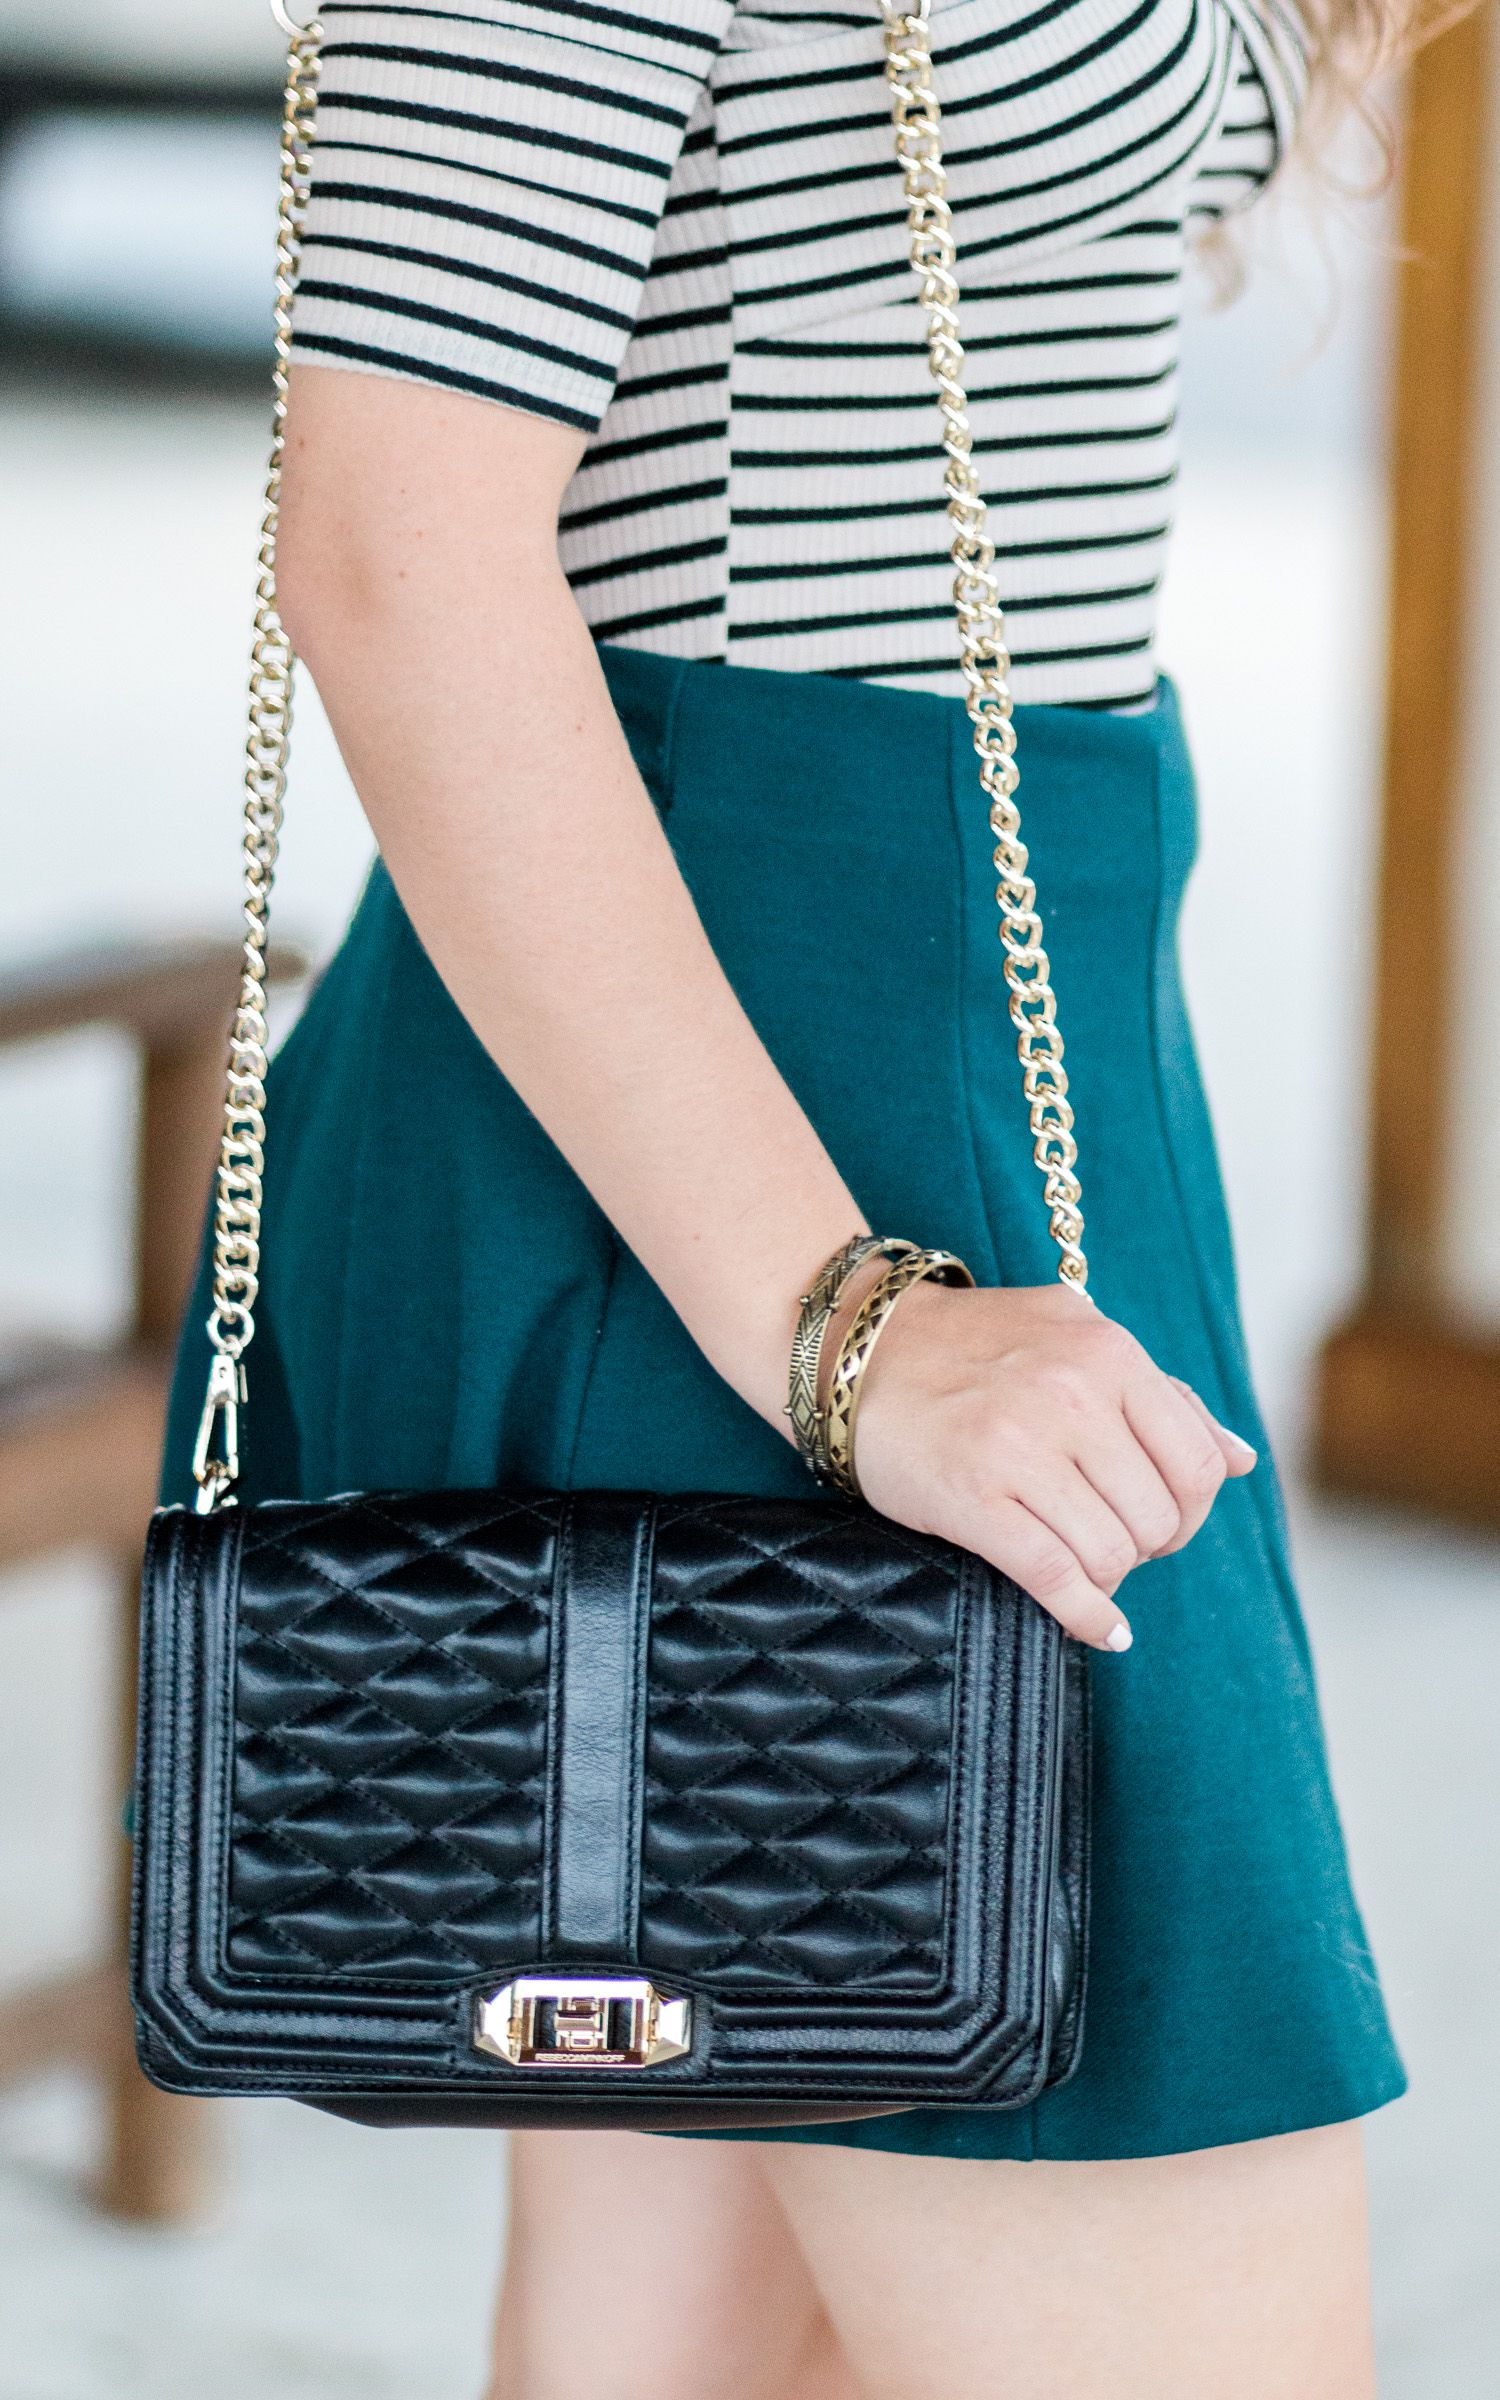 Rebecca Minkoff black and gold Love crossbody bag, antiqued gold bracelets, and a hunter green skater skirt styled by blogger Ashley Brooke Nicholas. Click through this pin to see this cute fall outfit idea + learn where to buy each item. #Zapposstyle #MyLuckyBrand sponsored by @zappos @luckybrandjeans